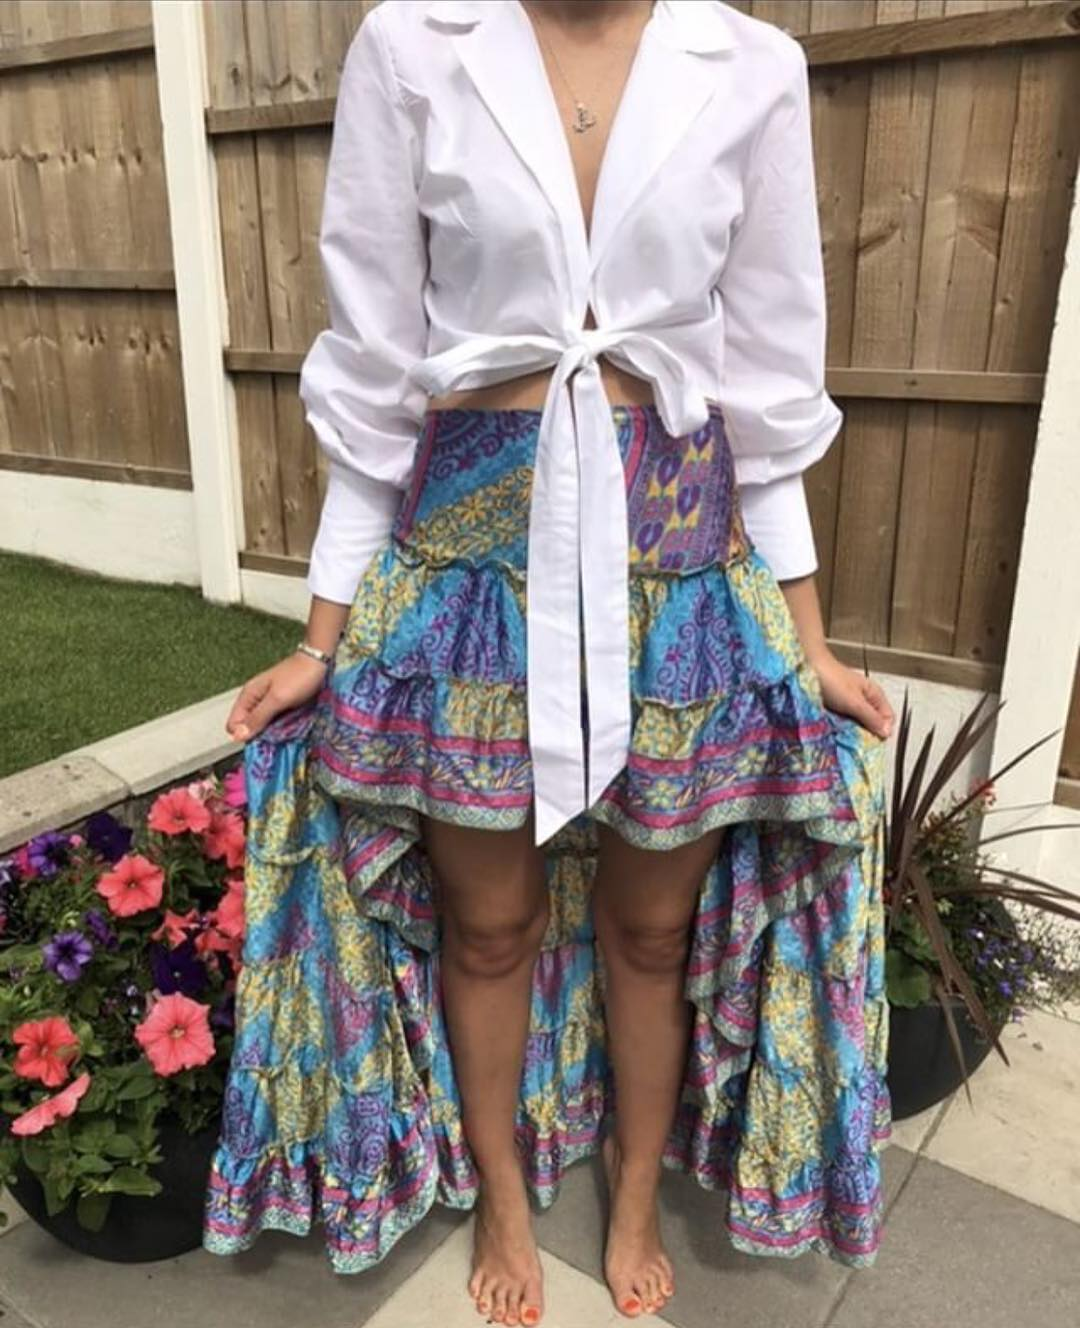 Paisley Print Maxi Skirt In Gypsy Style For Summer Vacation 2019